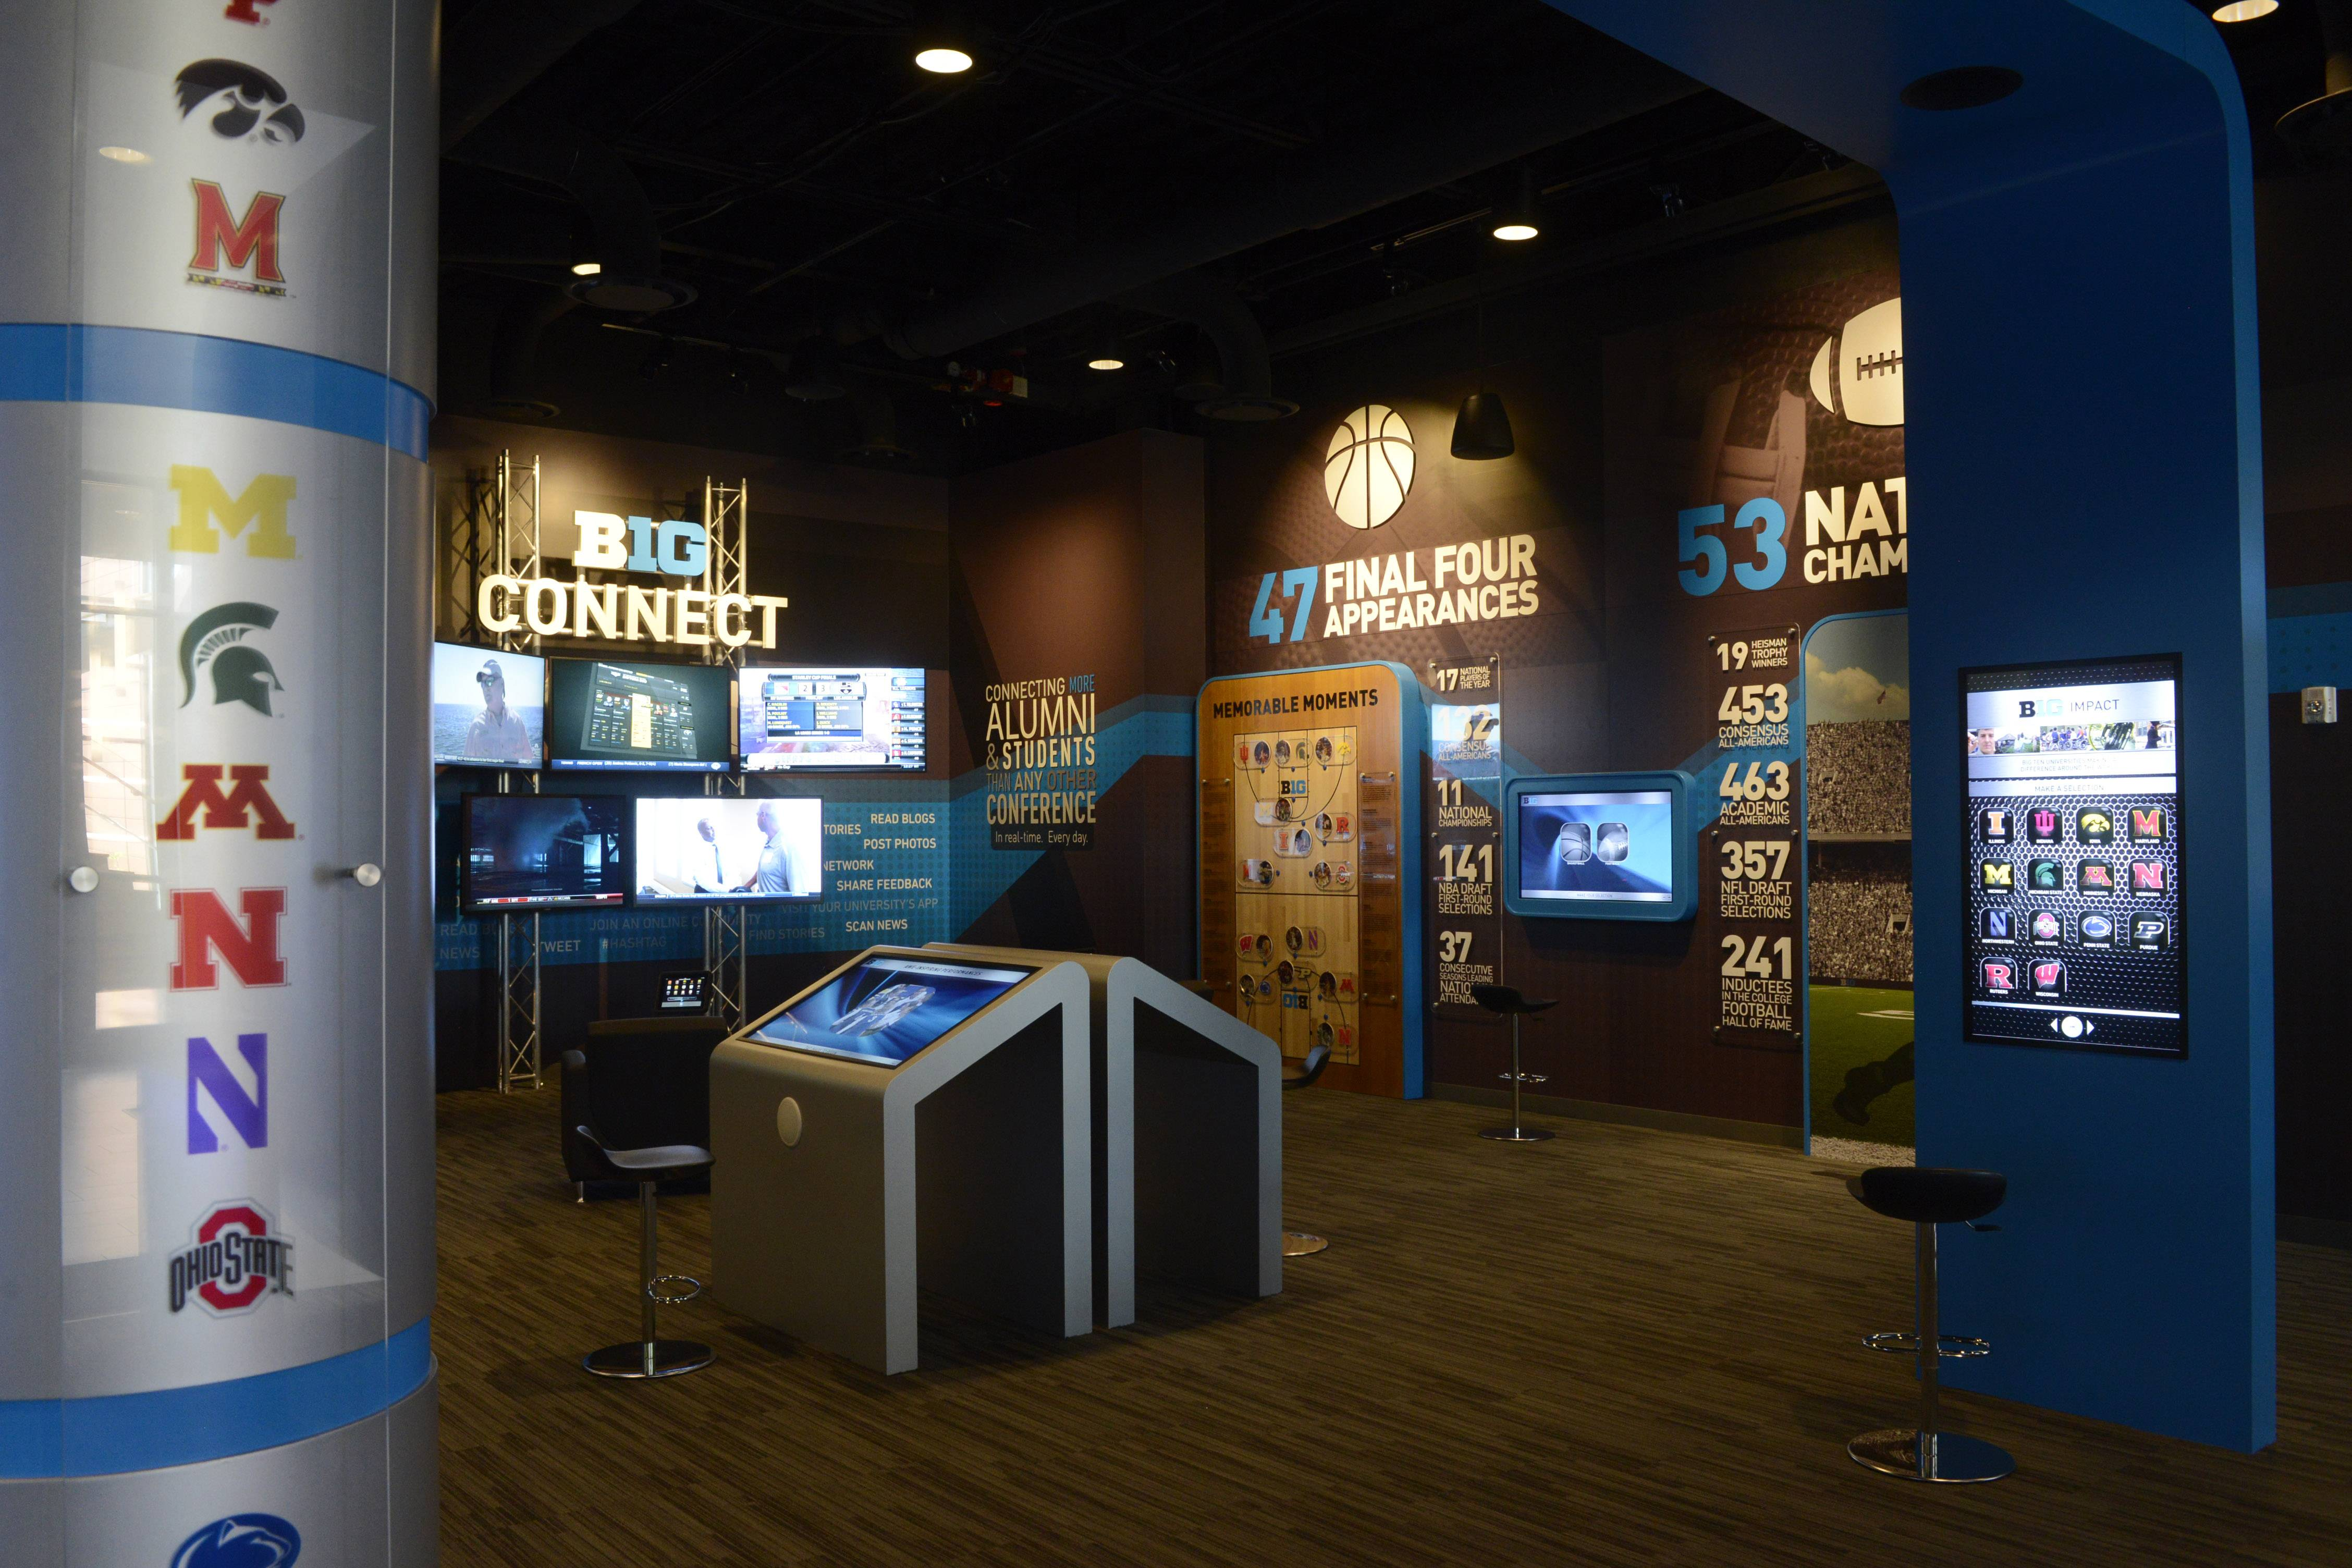 A view of several of the exhibits, including Big Ten Connect, at the new interactive Big Ten Museum.